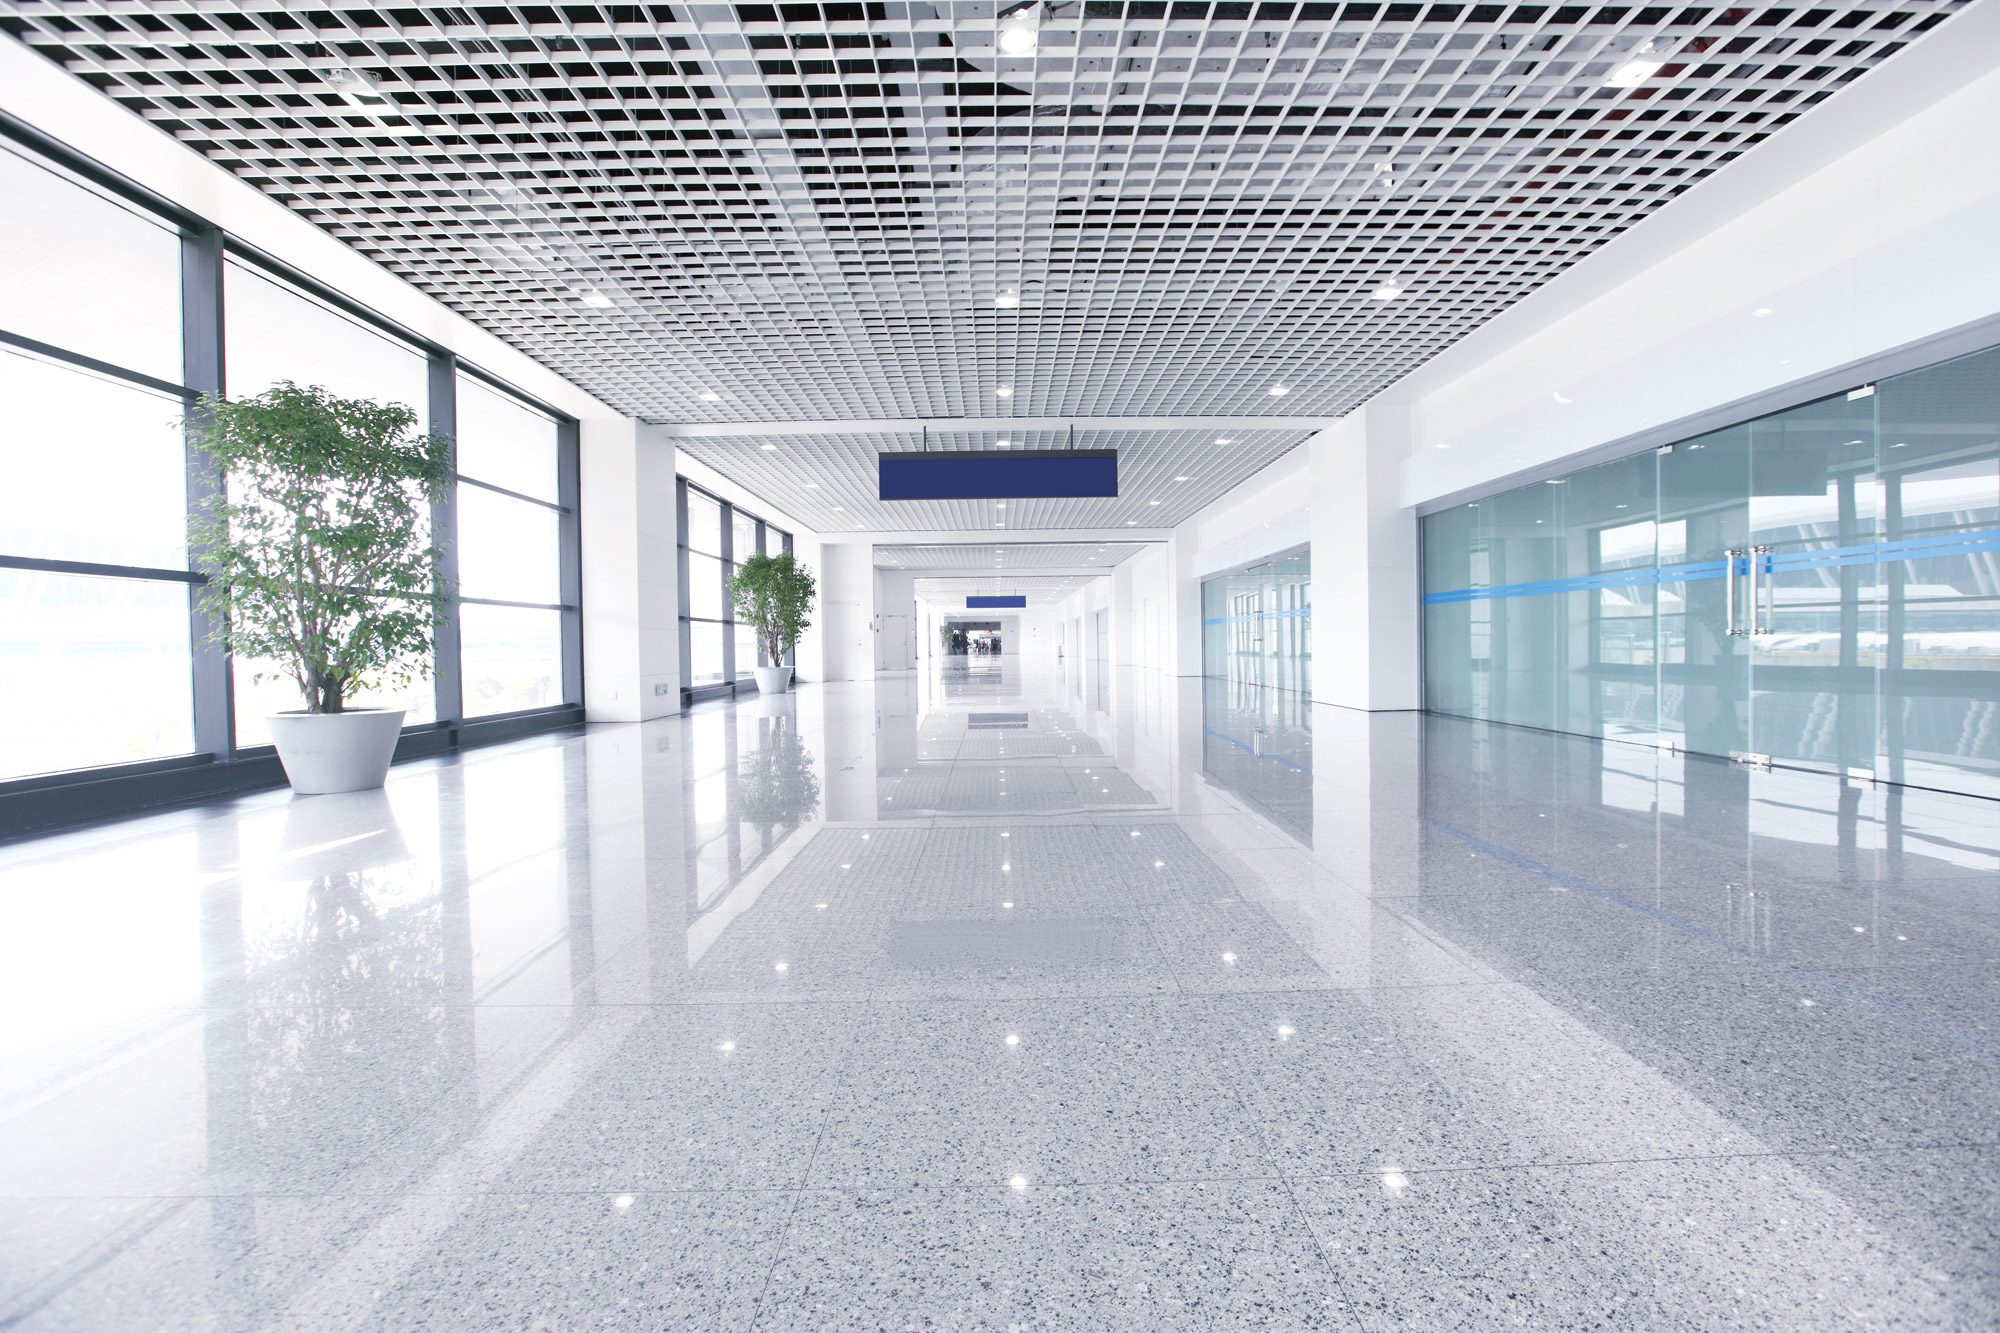 spotless commercial building hallway with shiny marble floors